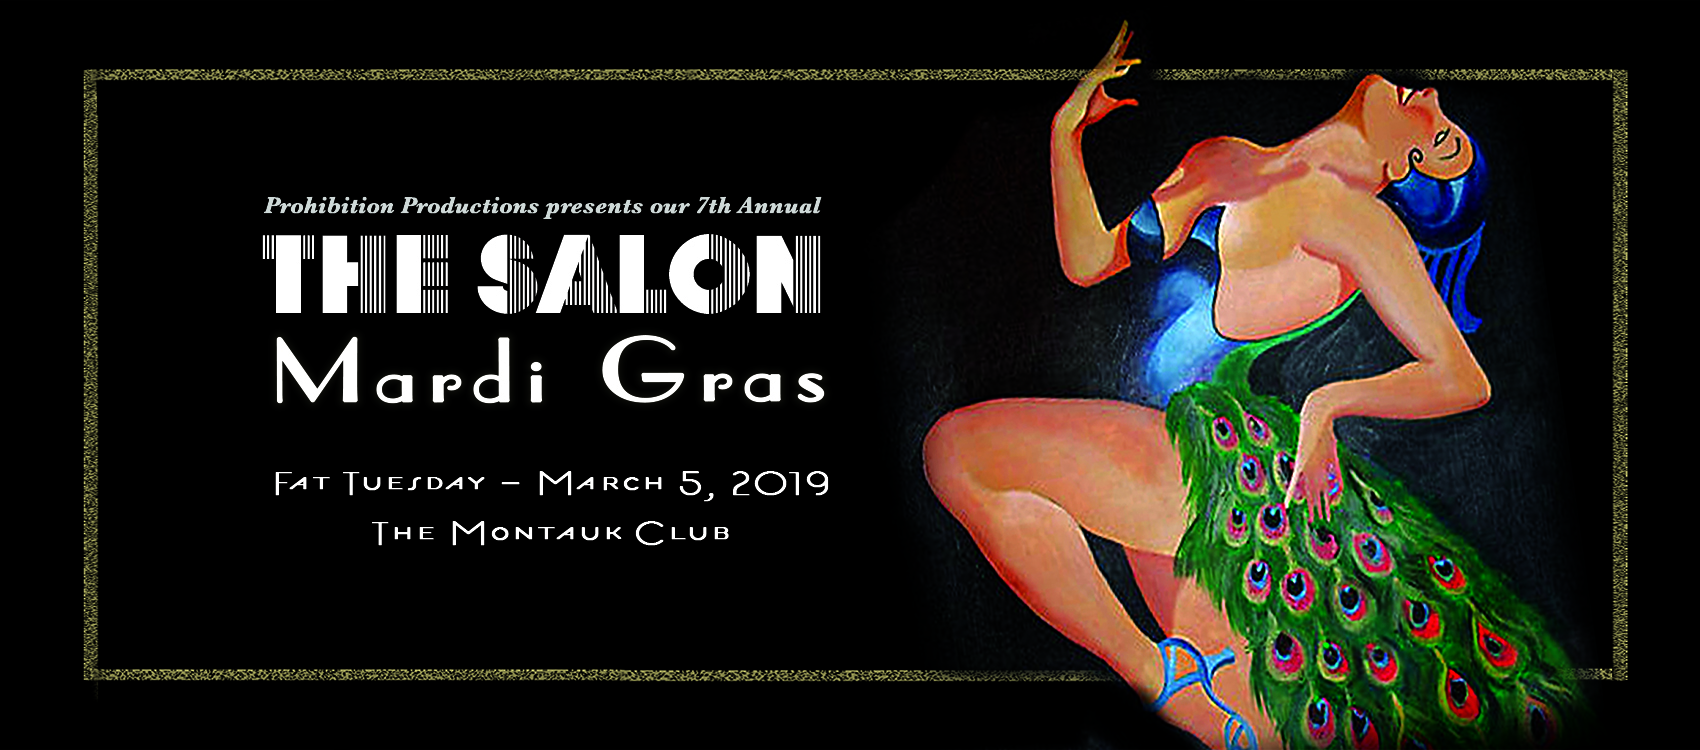 THE SALON: Mardi Gras (March 5, 2019)